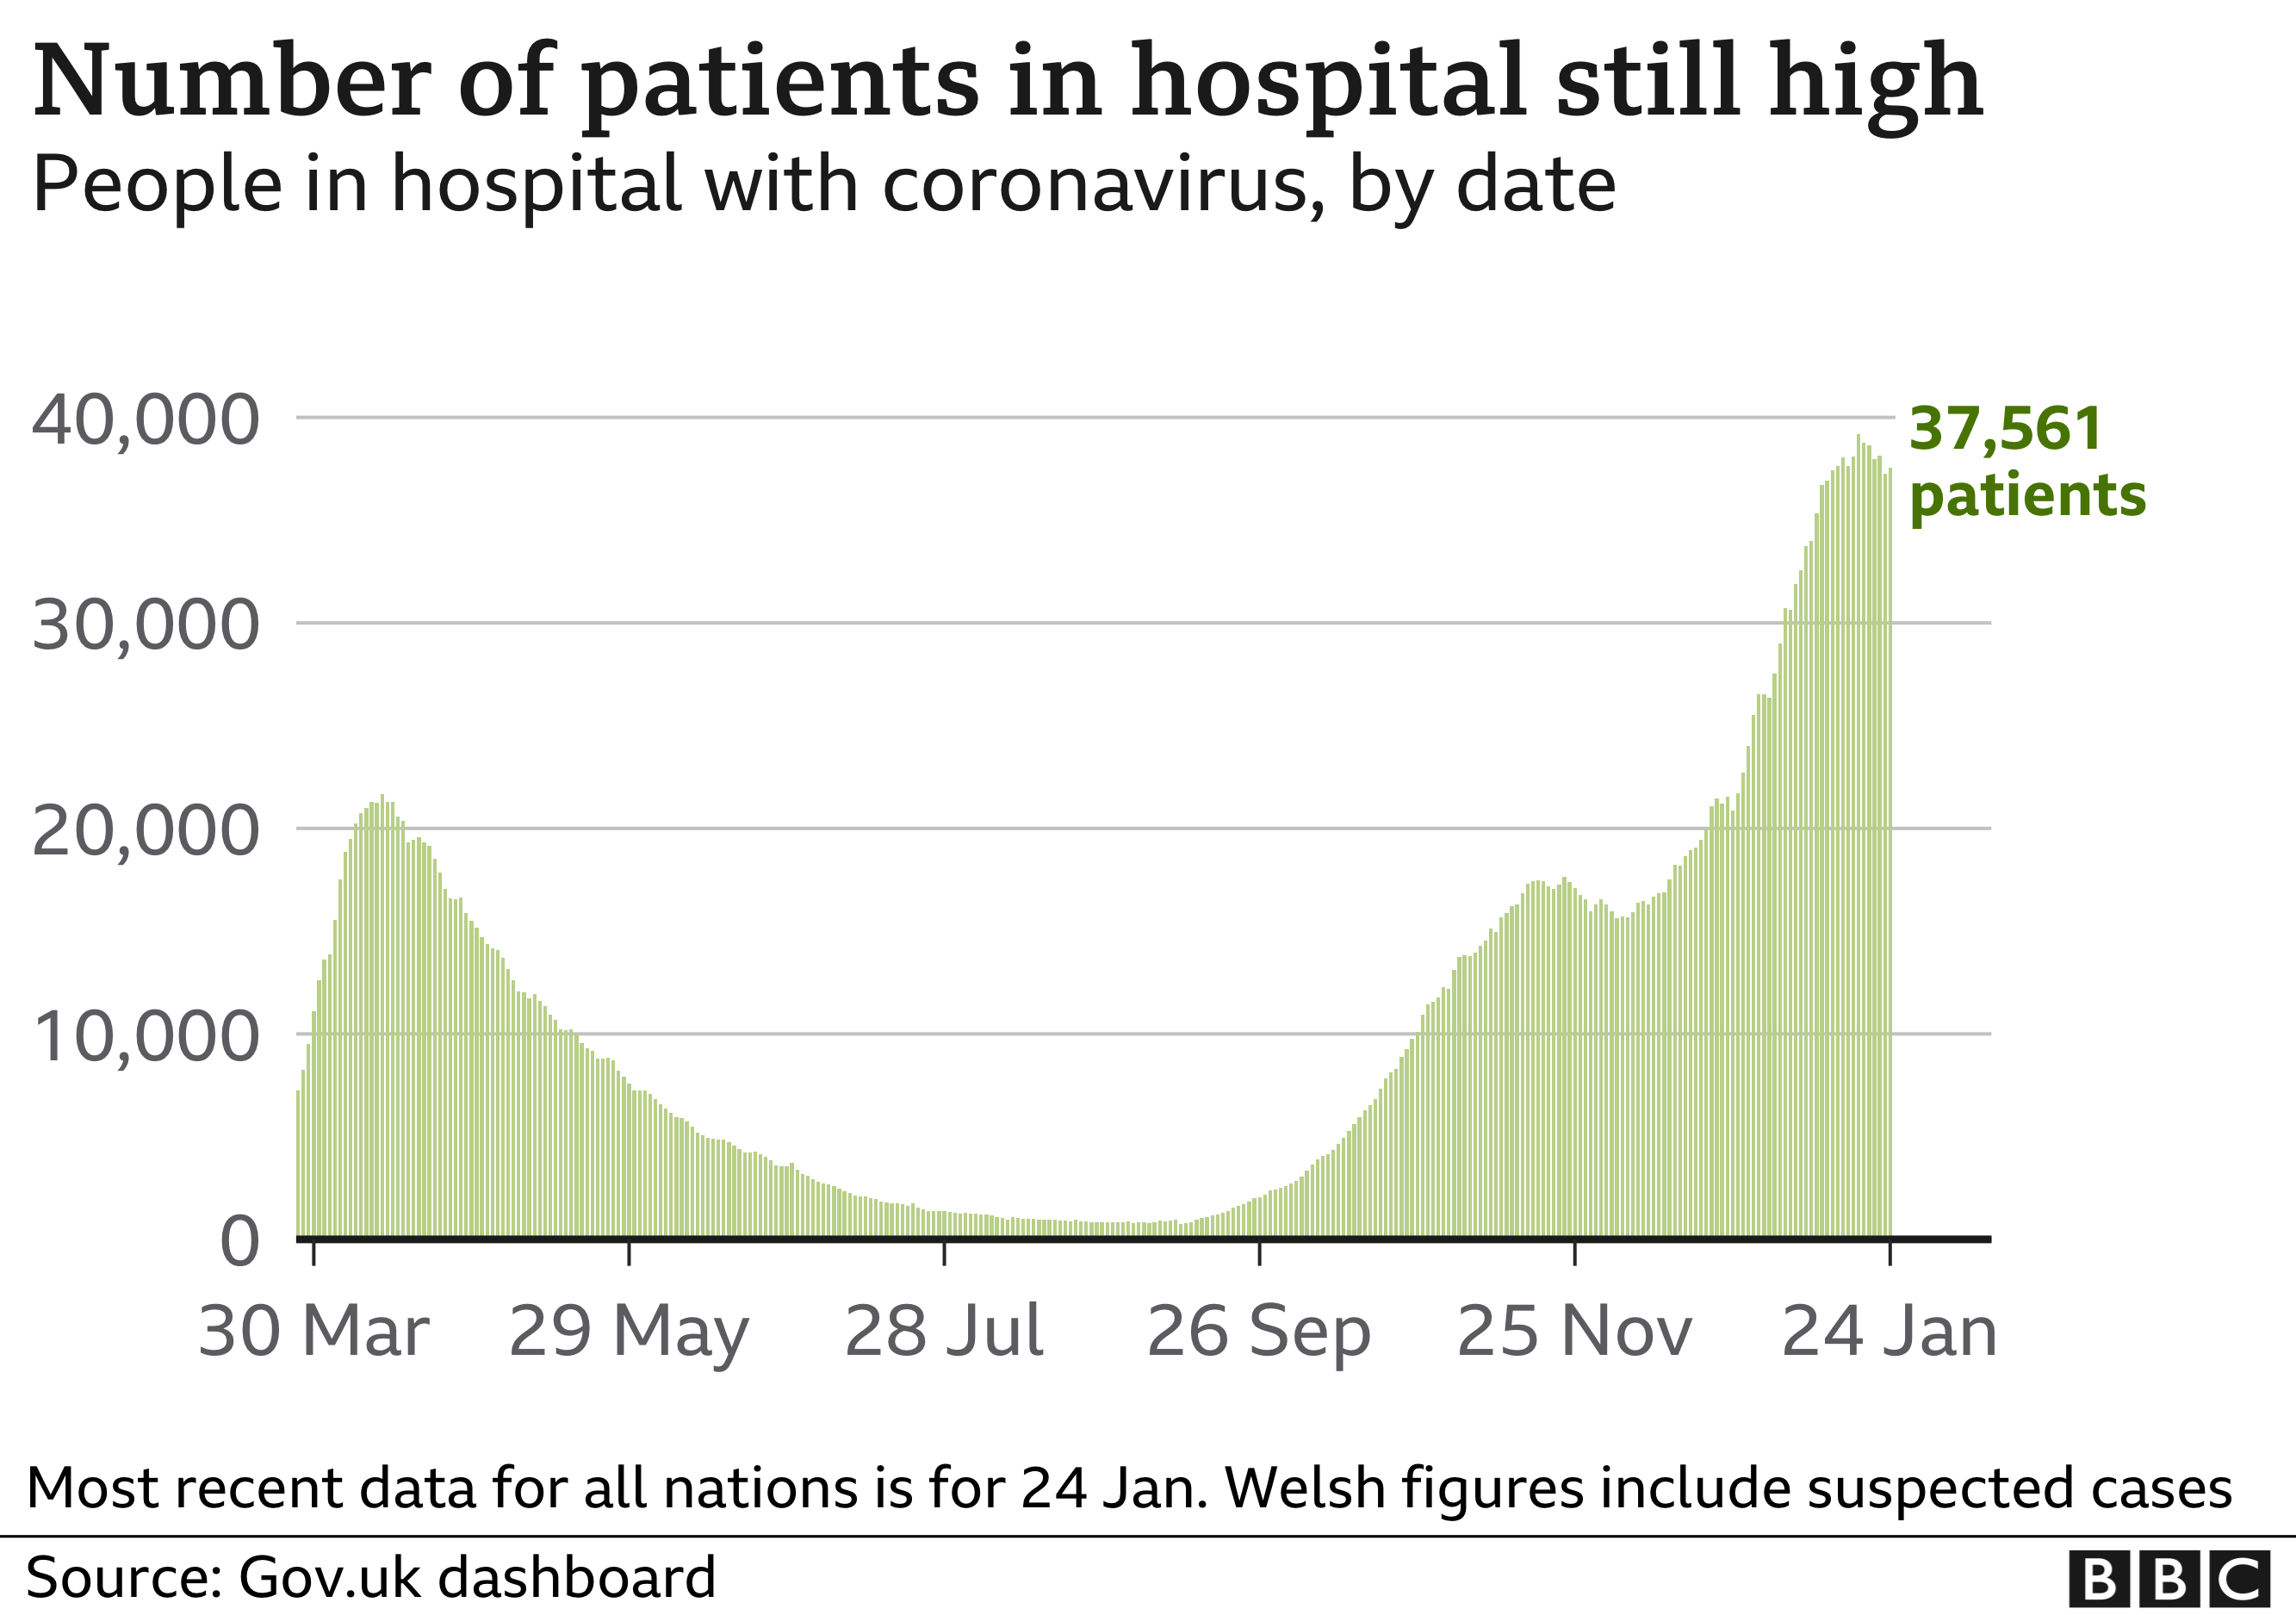 Chart shows hospital admissions are still high